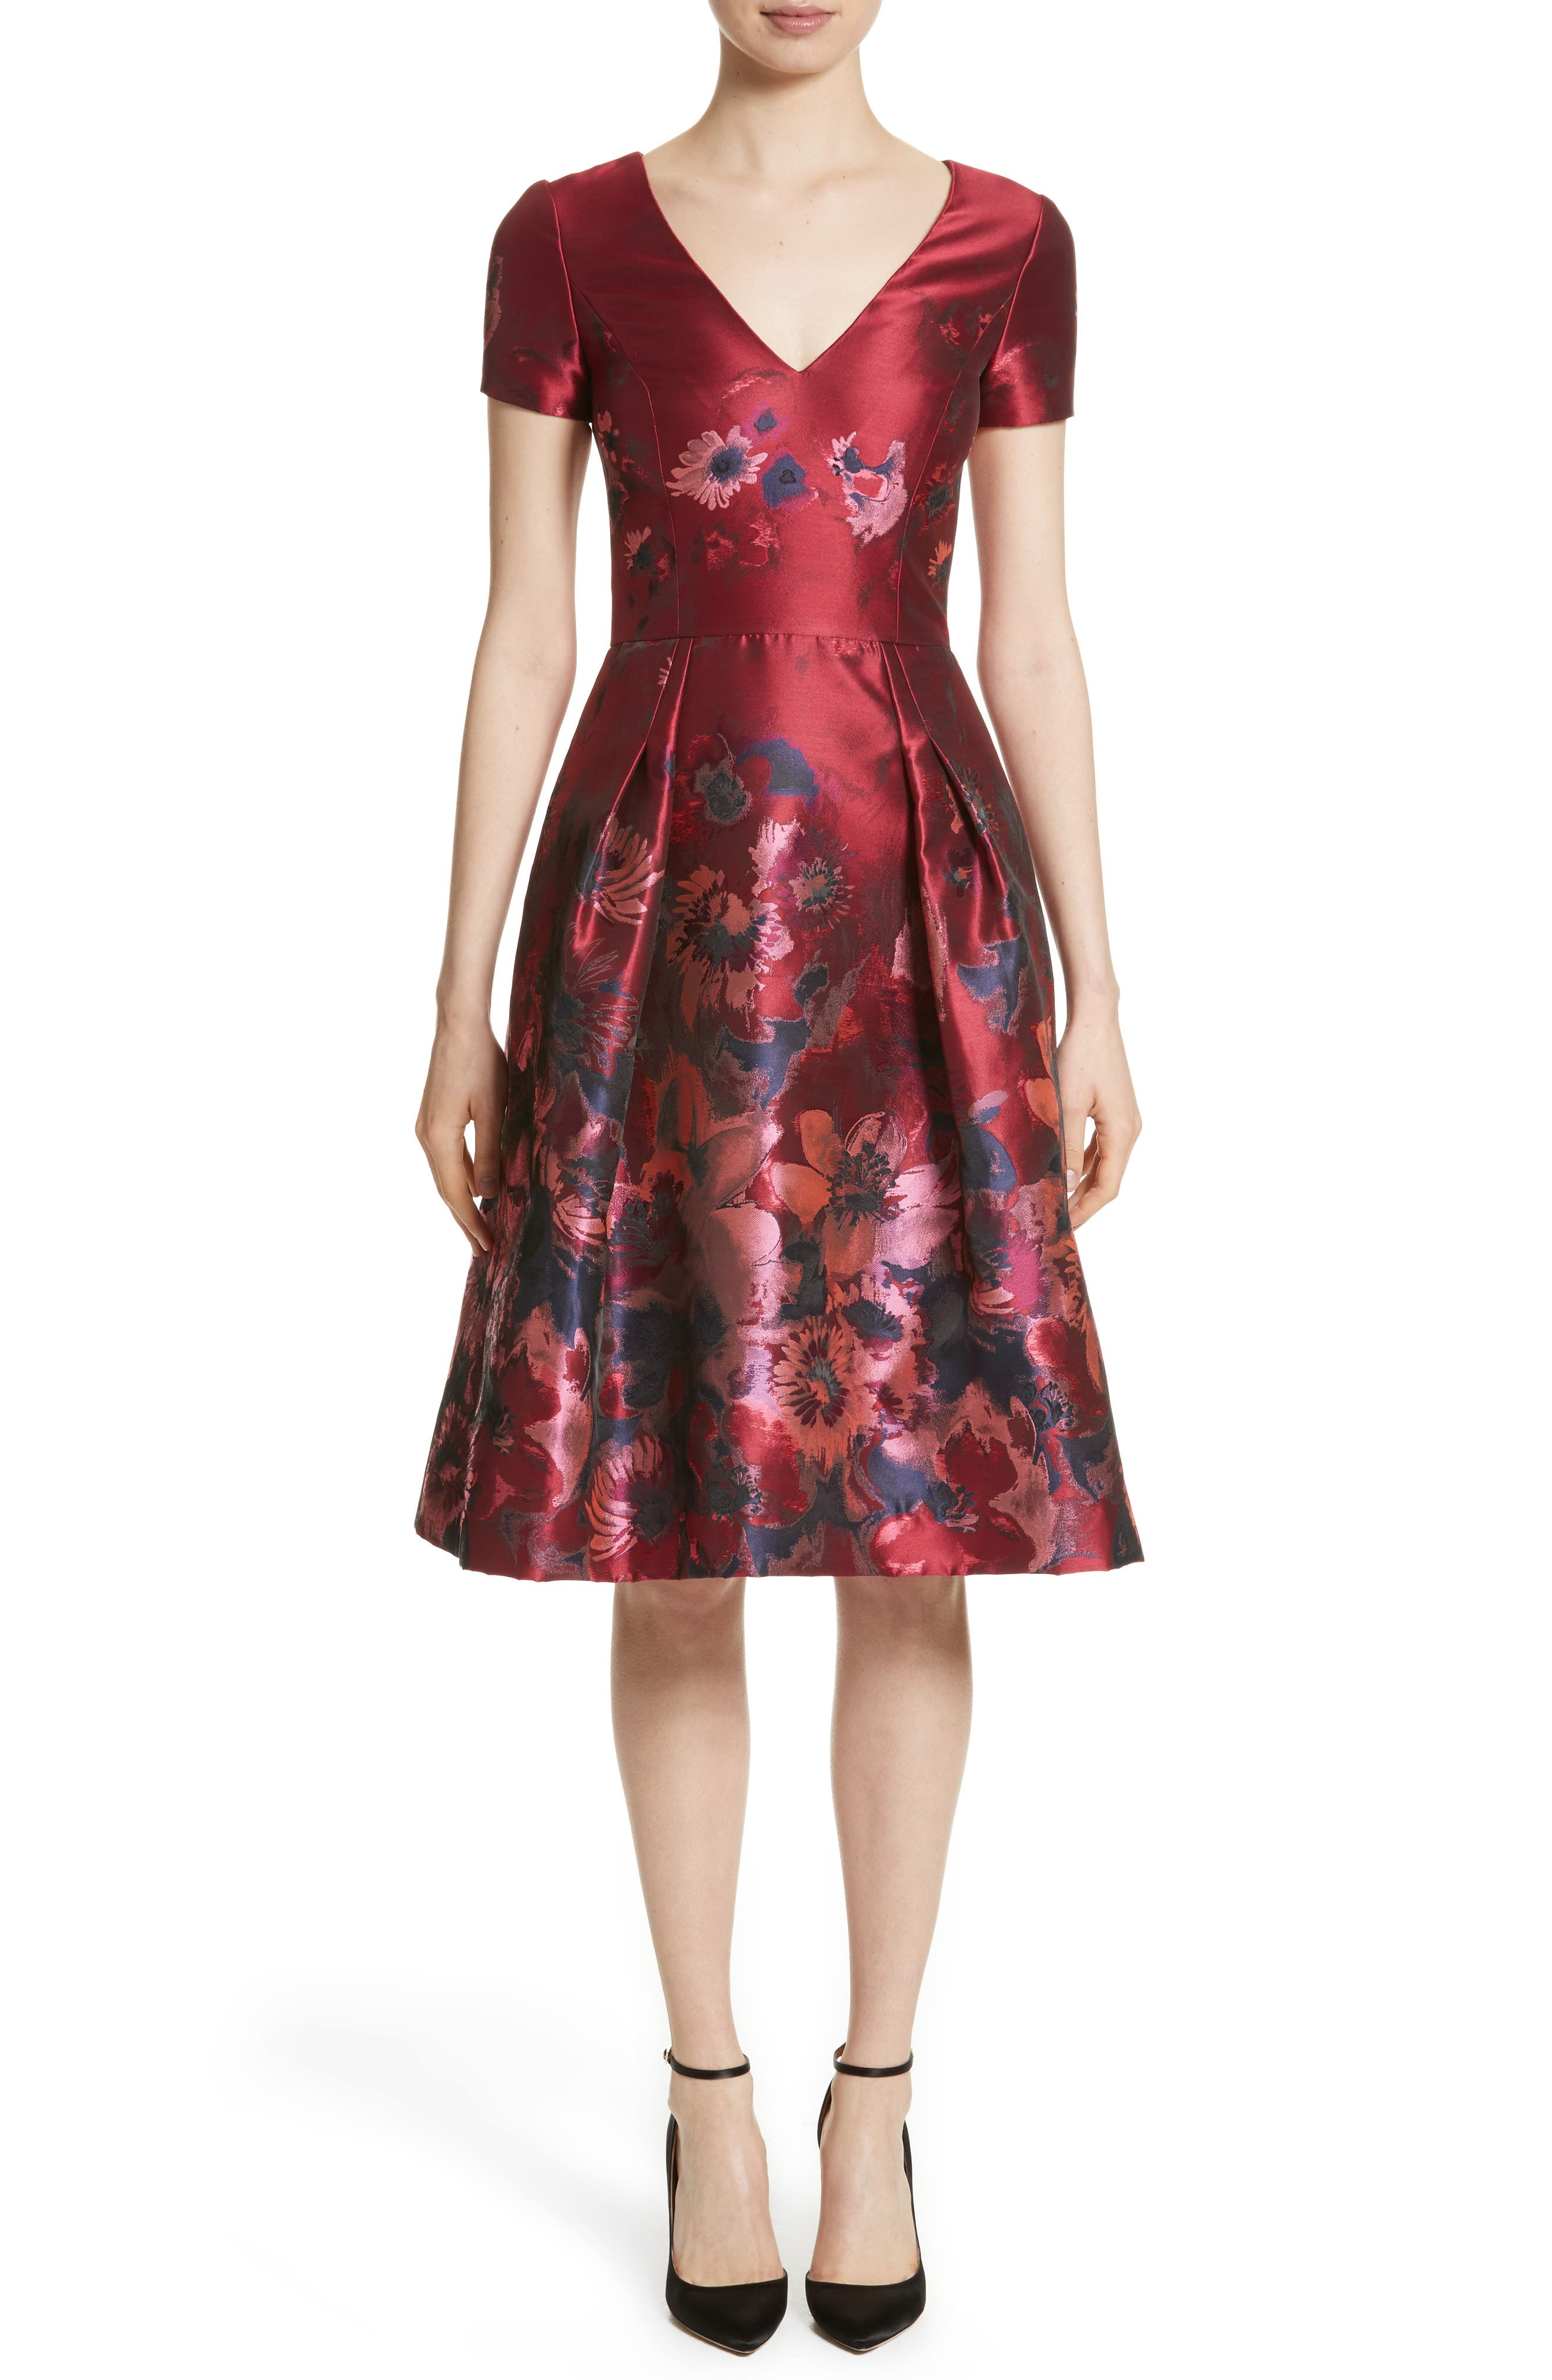 Carolina Herrera Floral Brocade Fit & Flare Dress